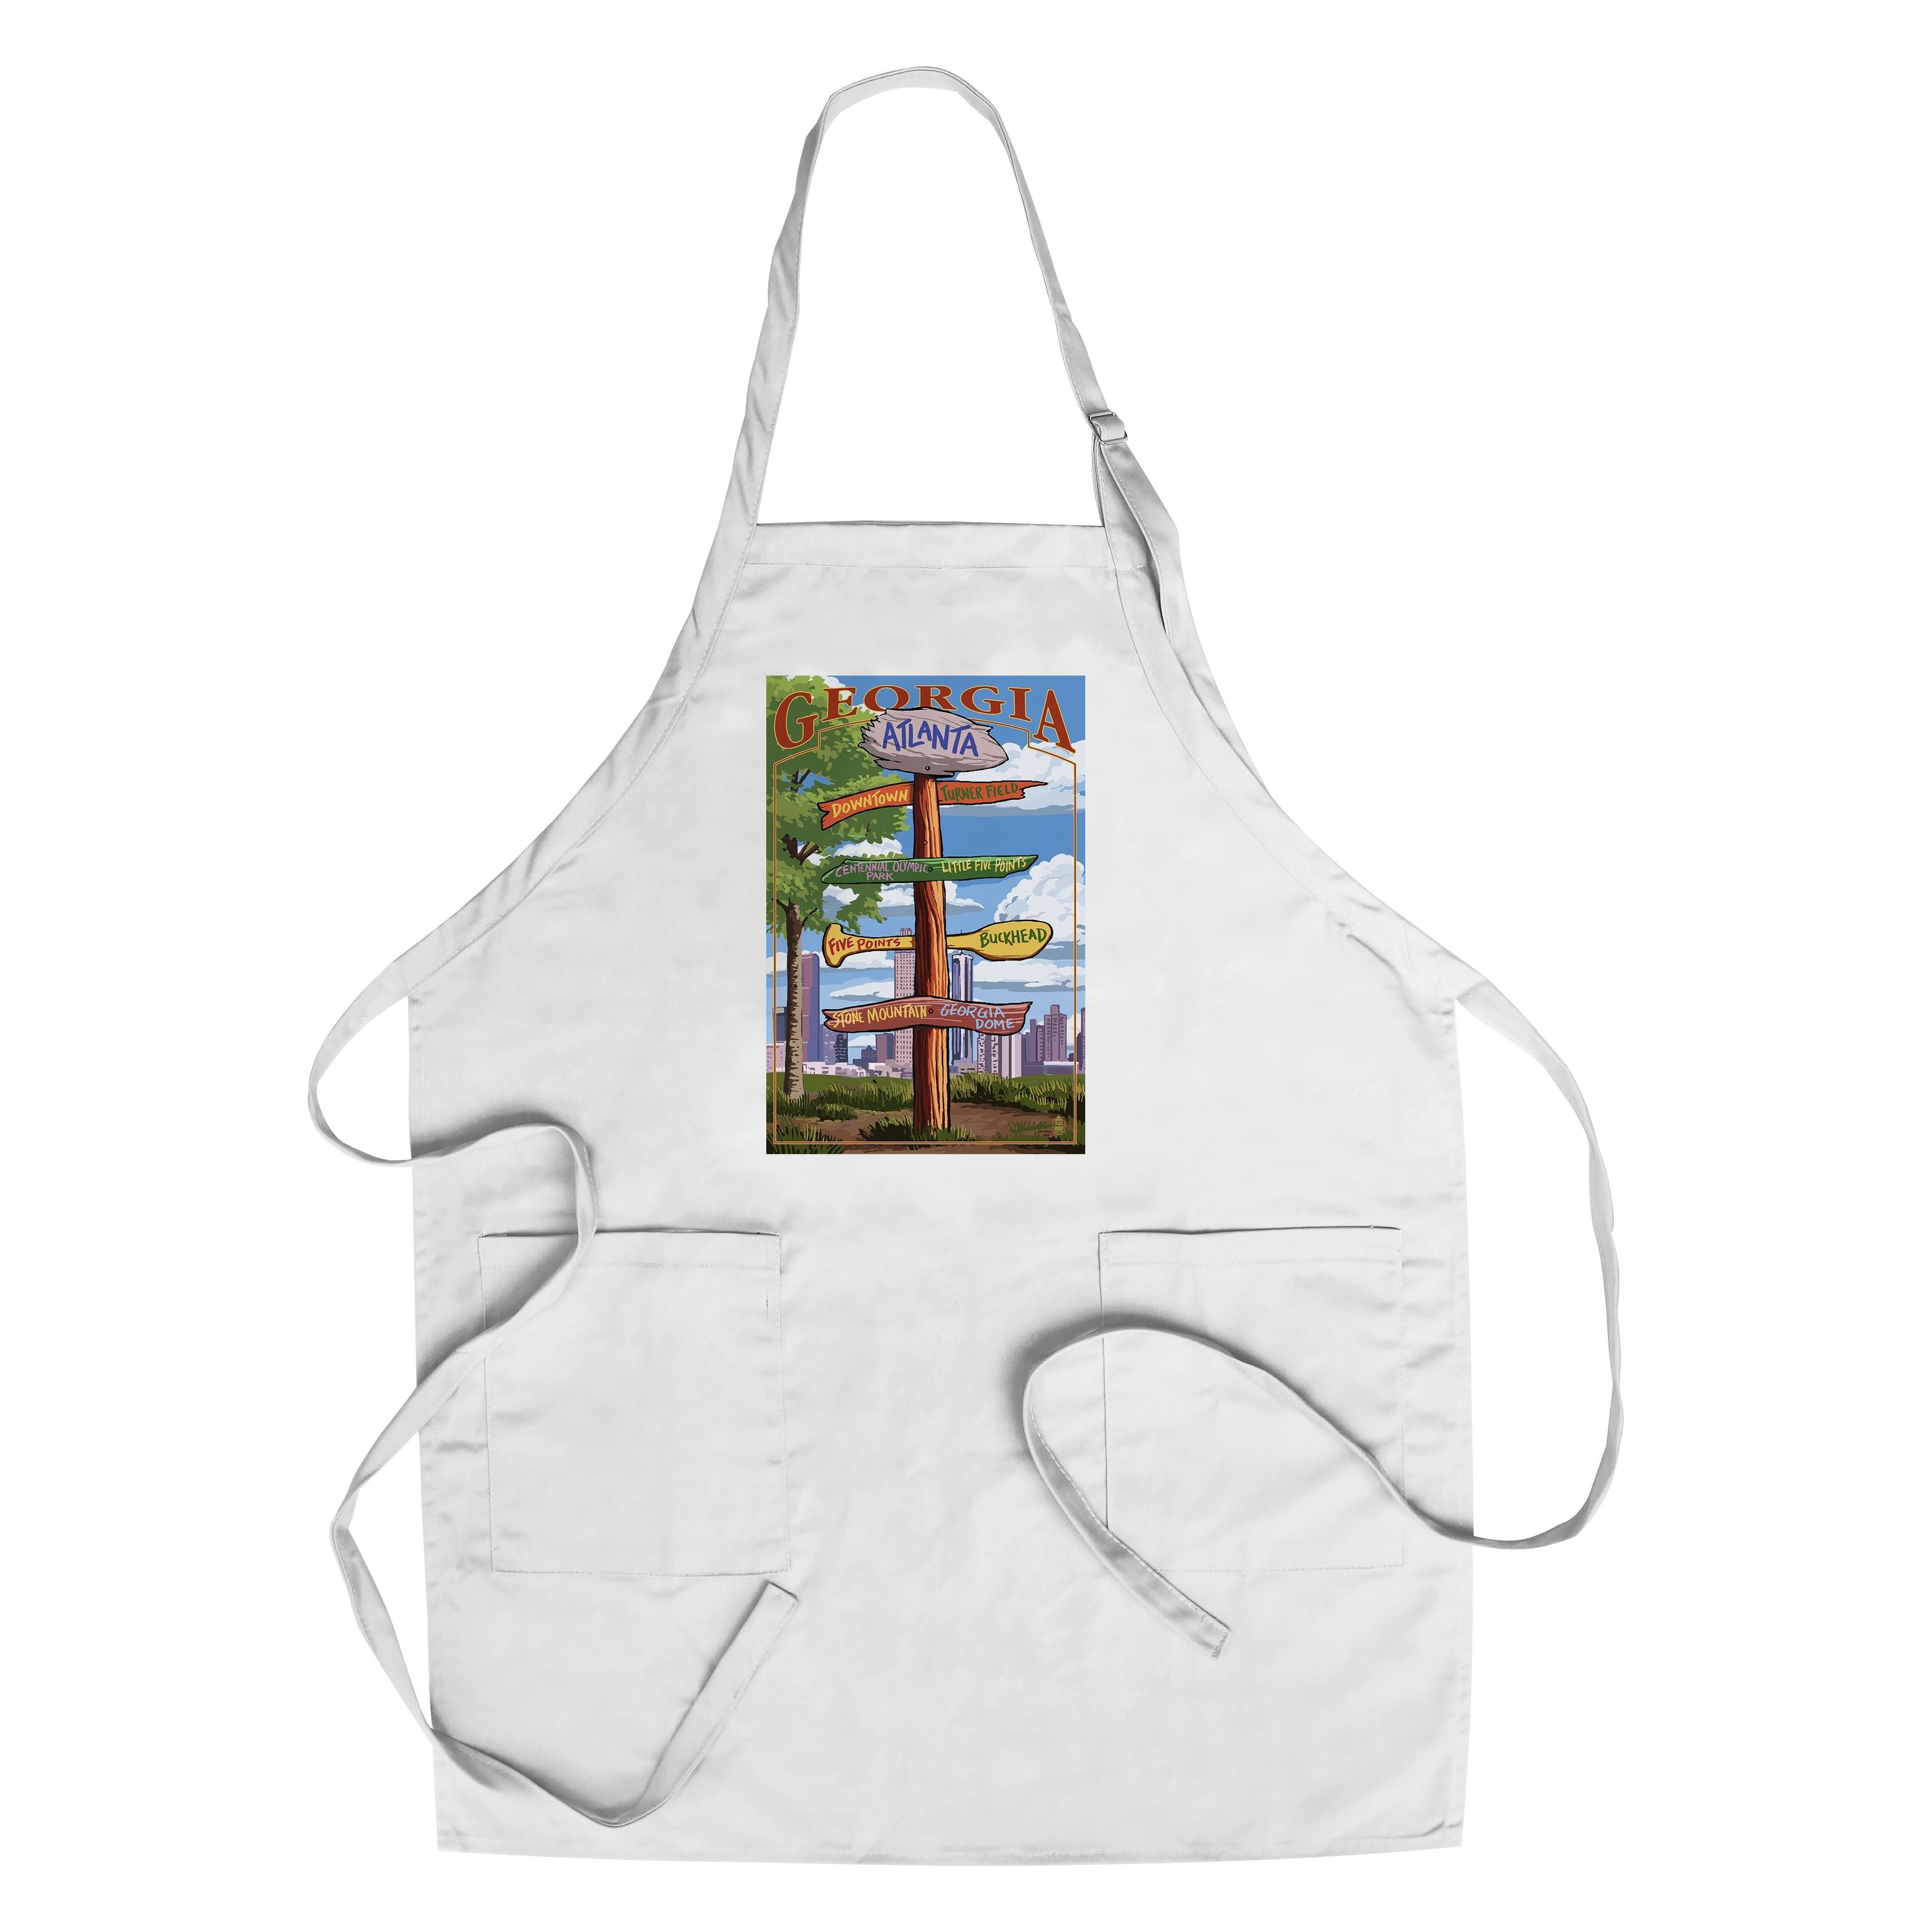 MT-Sports Store Team Logo Apron Chef Hat Set Adjustable Apron Chef Hat One Size